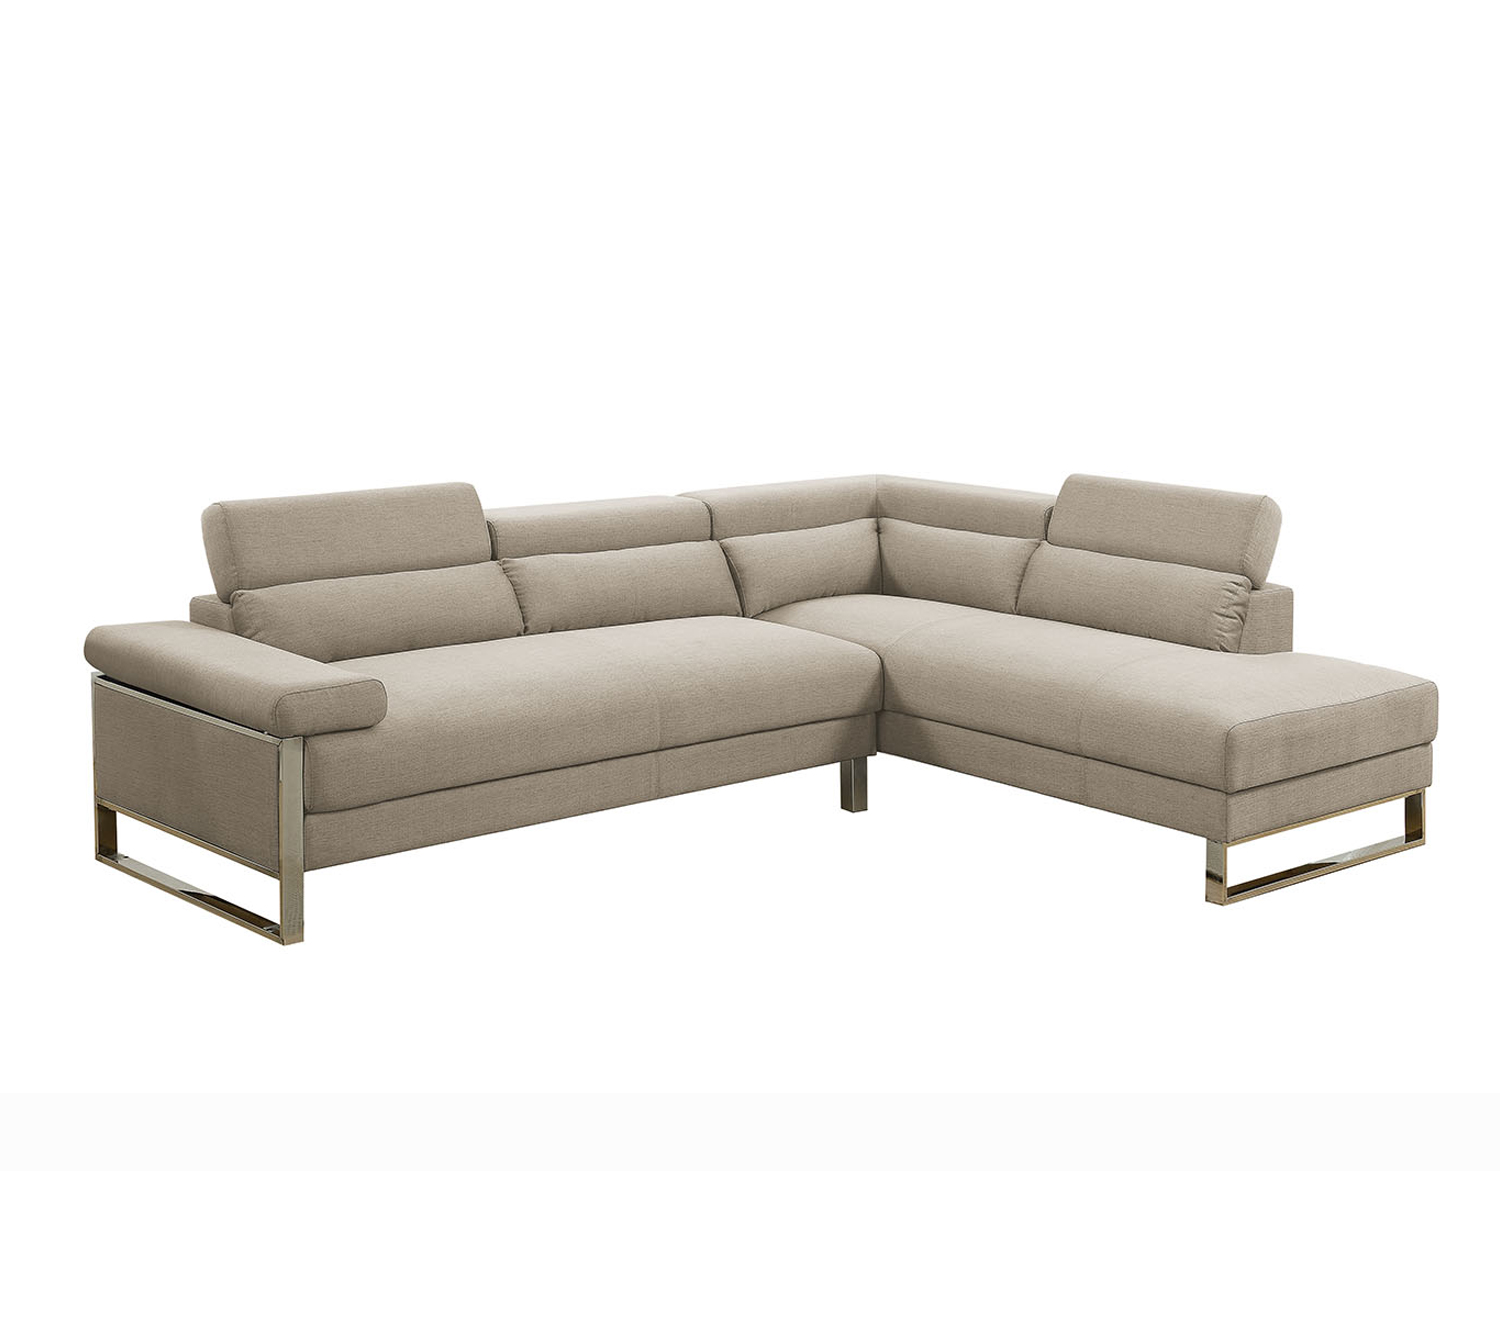 Bobkona Cerviel Glossy Polyfabric Sectional Set in Charcoal. by Poundex